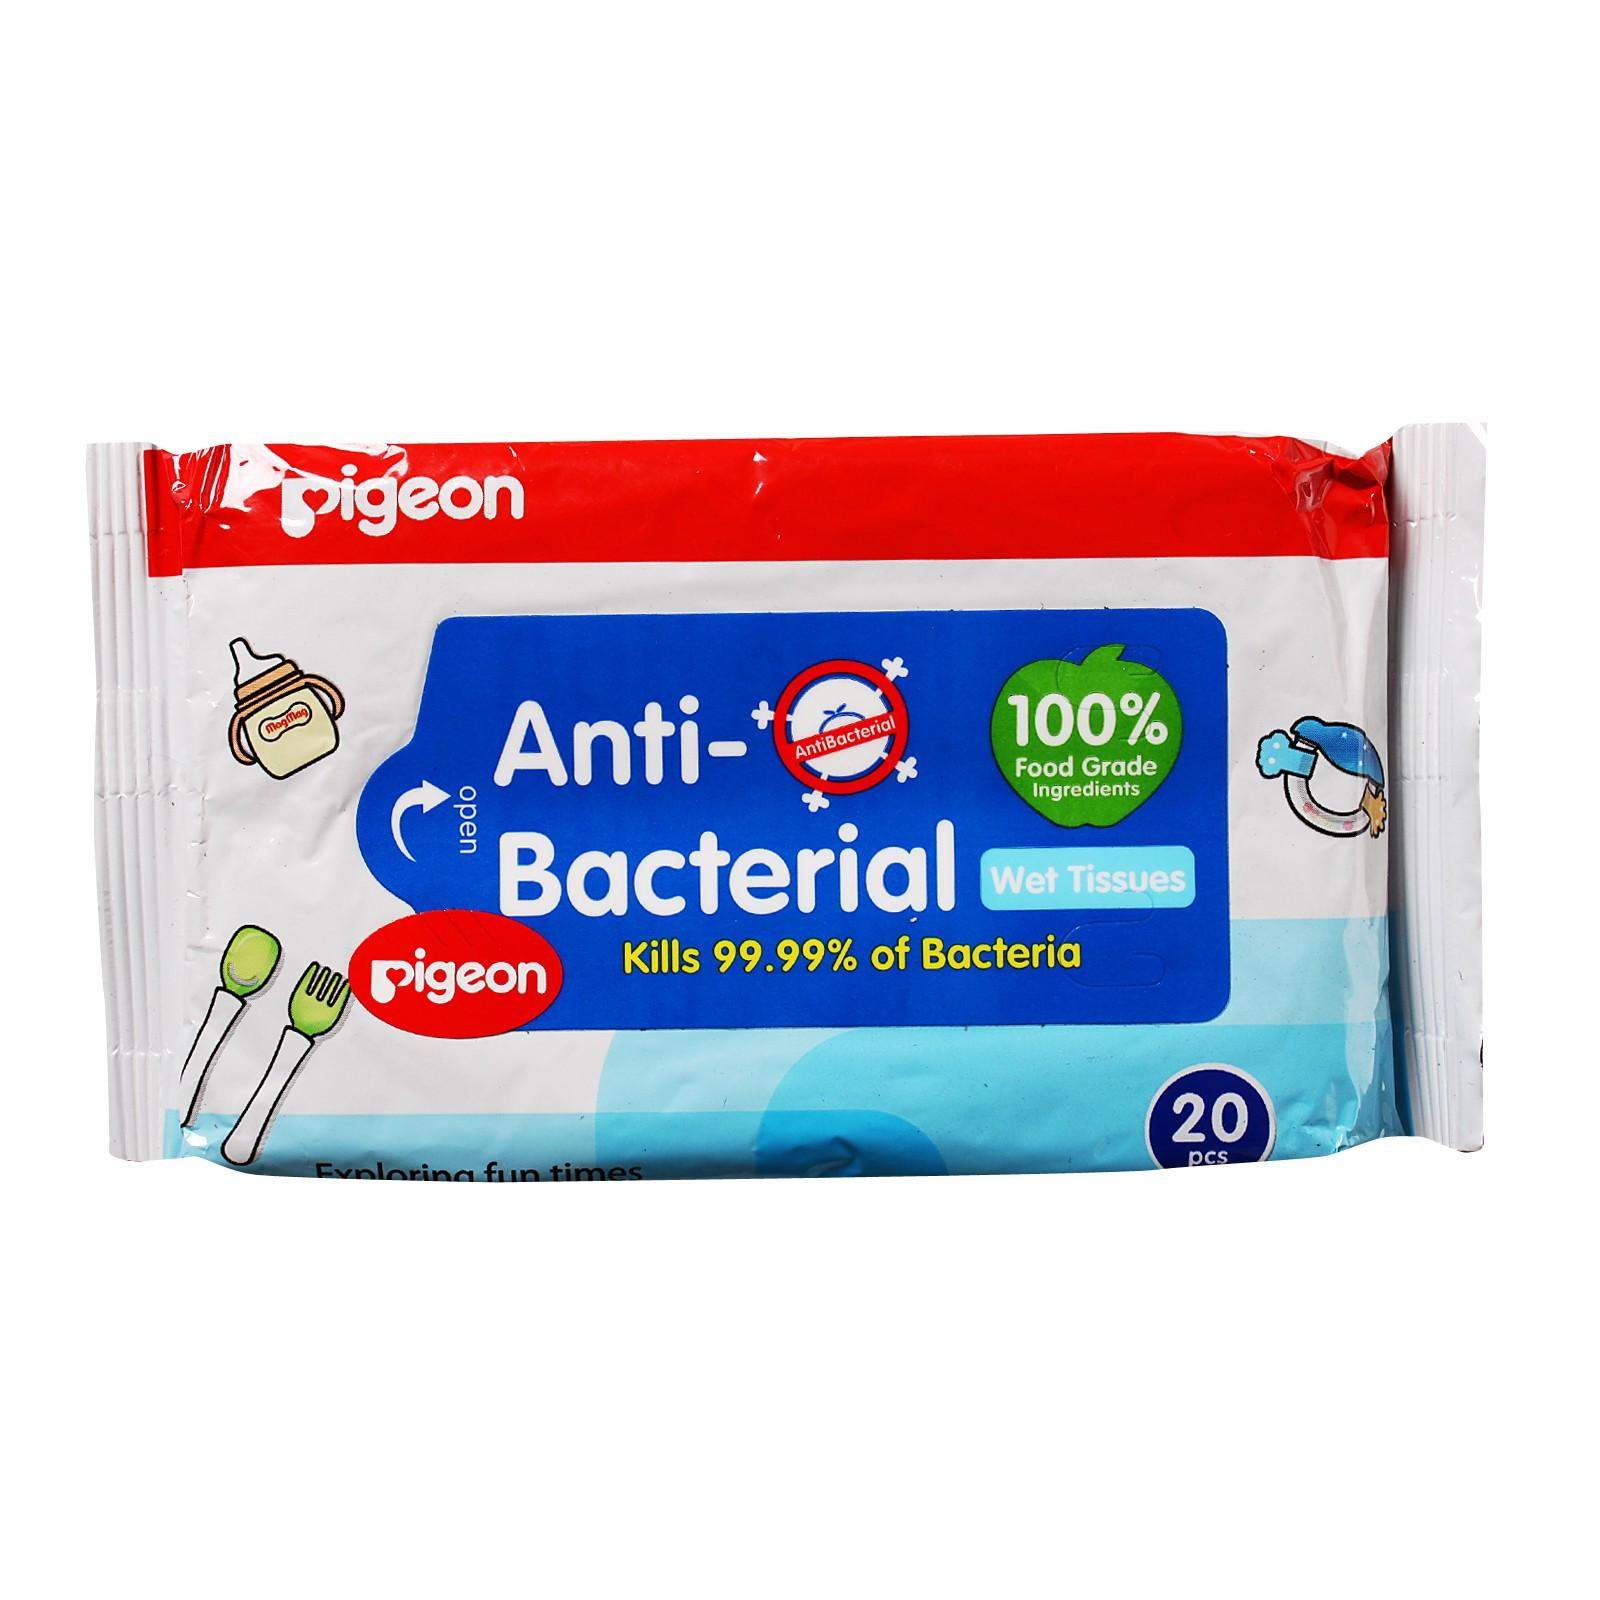 Pigeon Anti-Bacterial Wet Tissues (Packaging may vary)